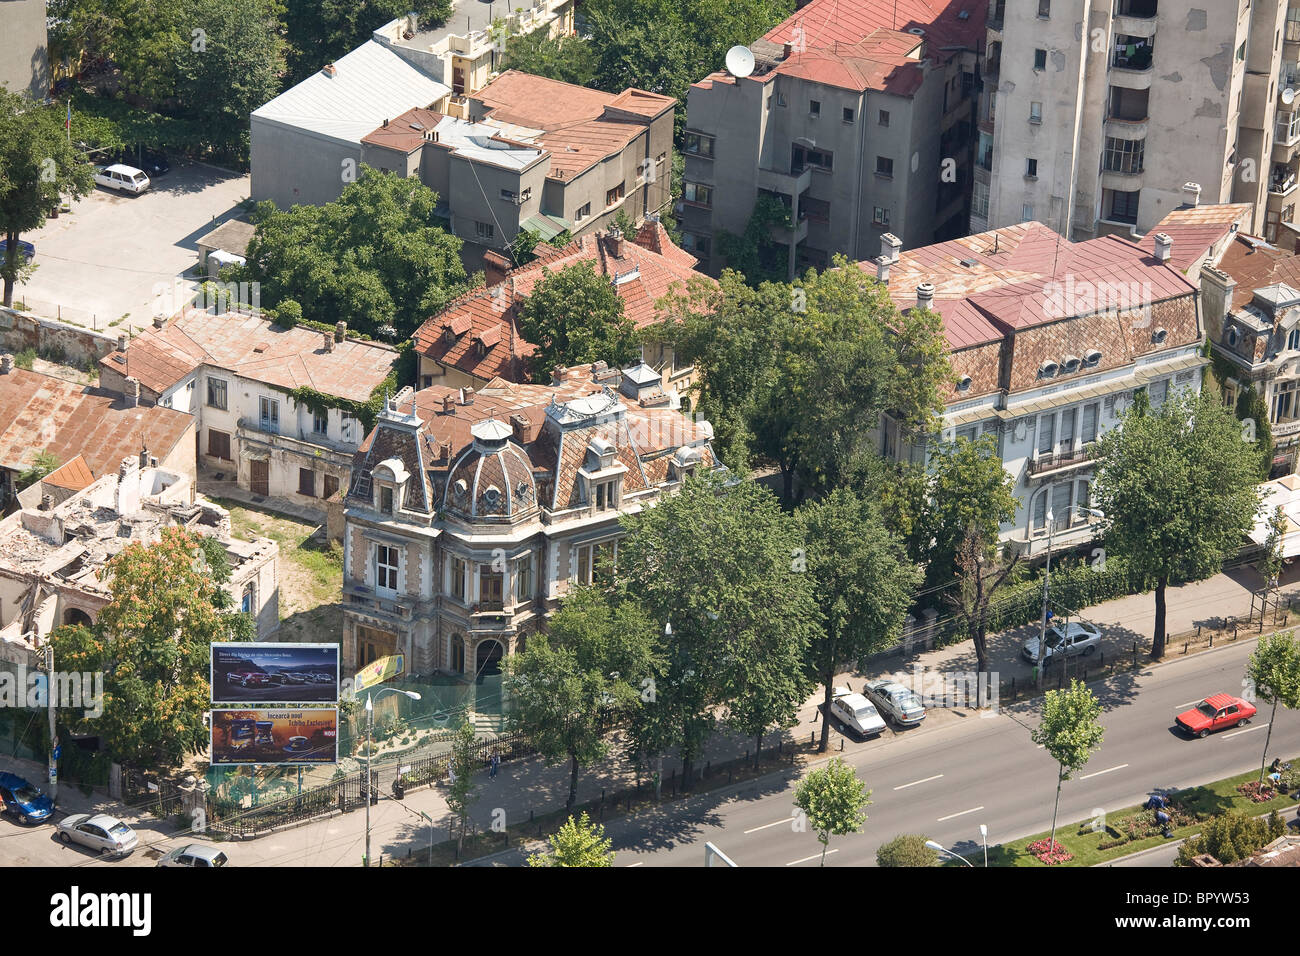 Aerial photograph of the Romanian city of Bucharest - Stock Image